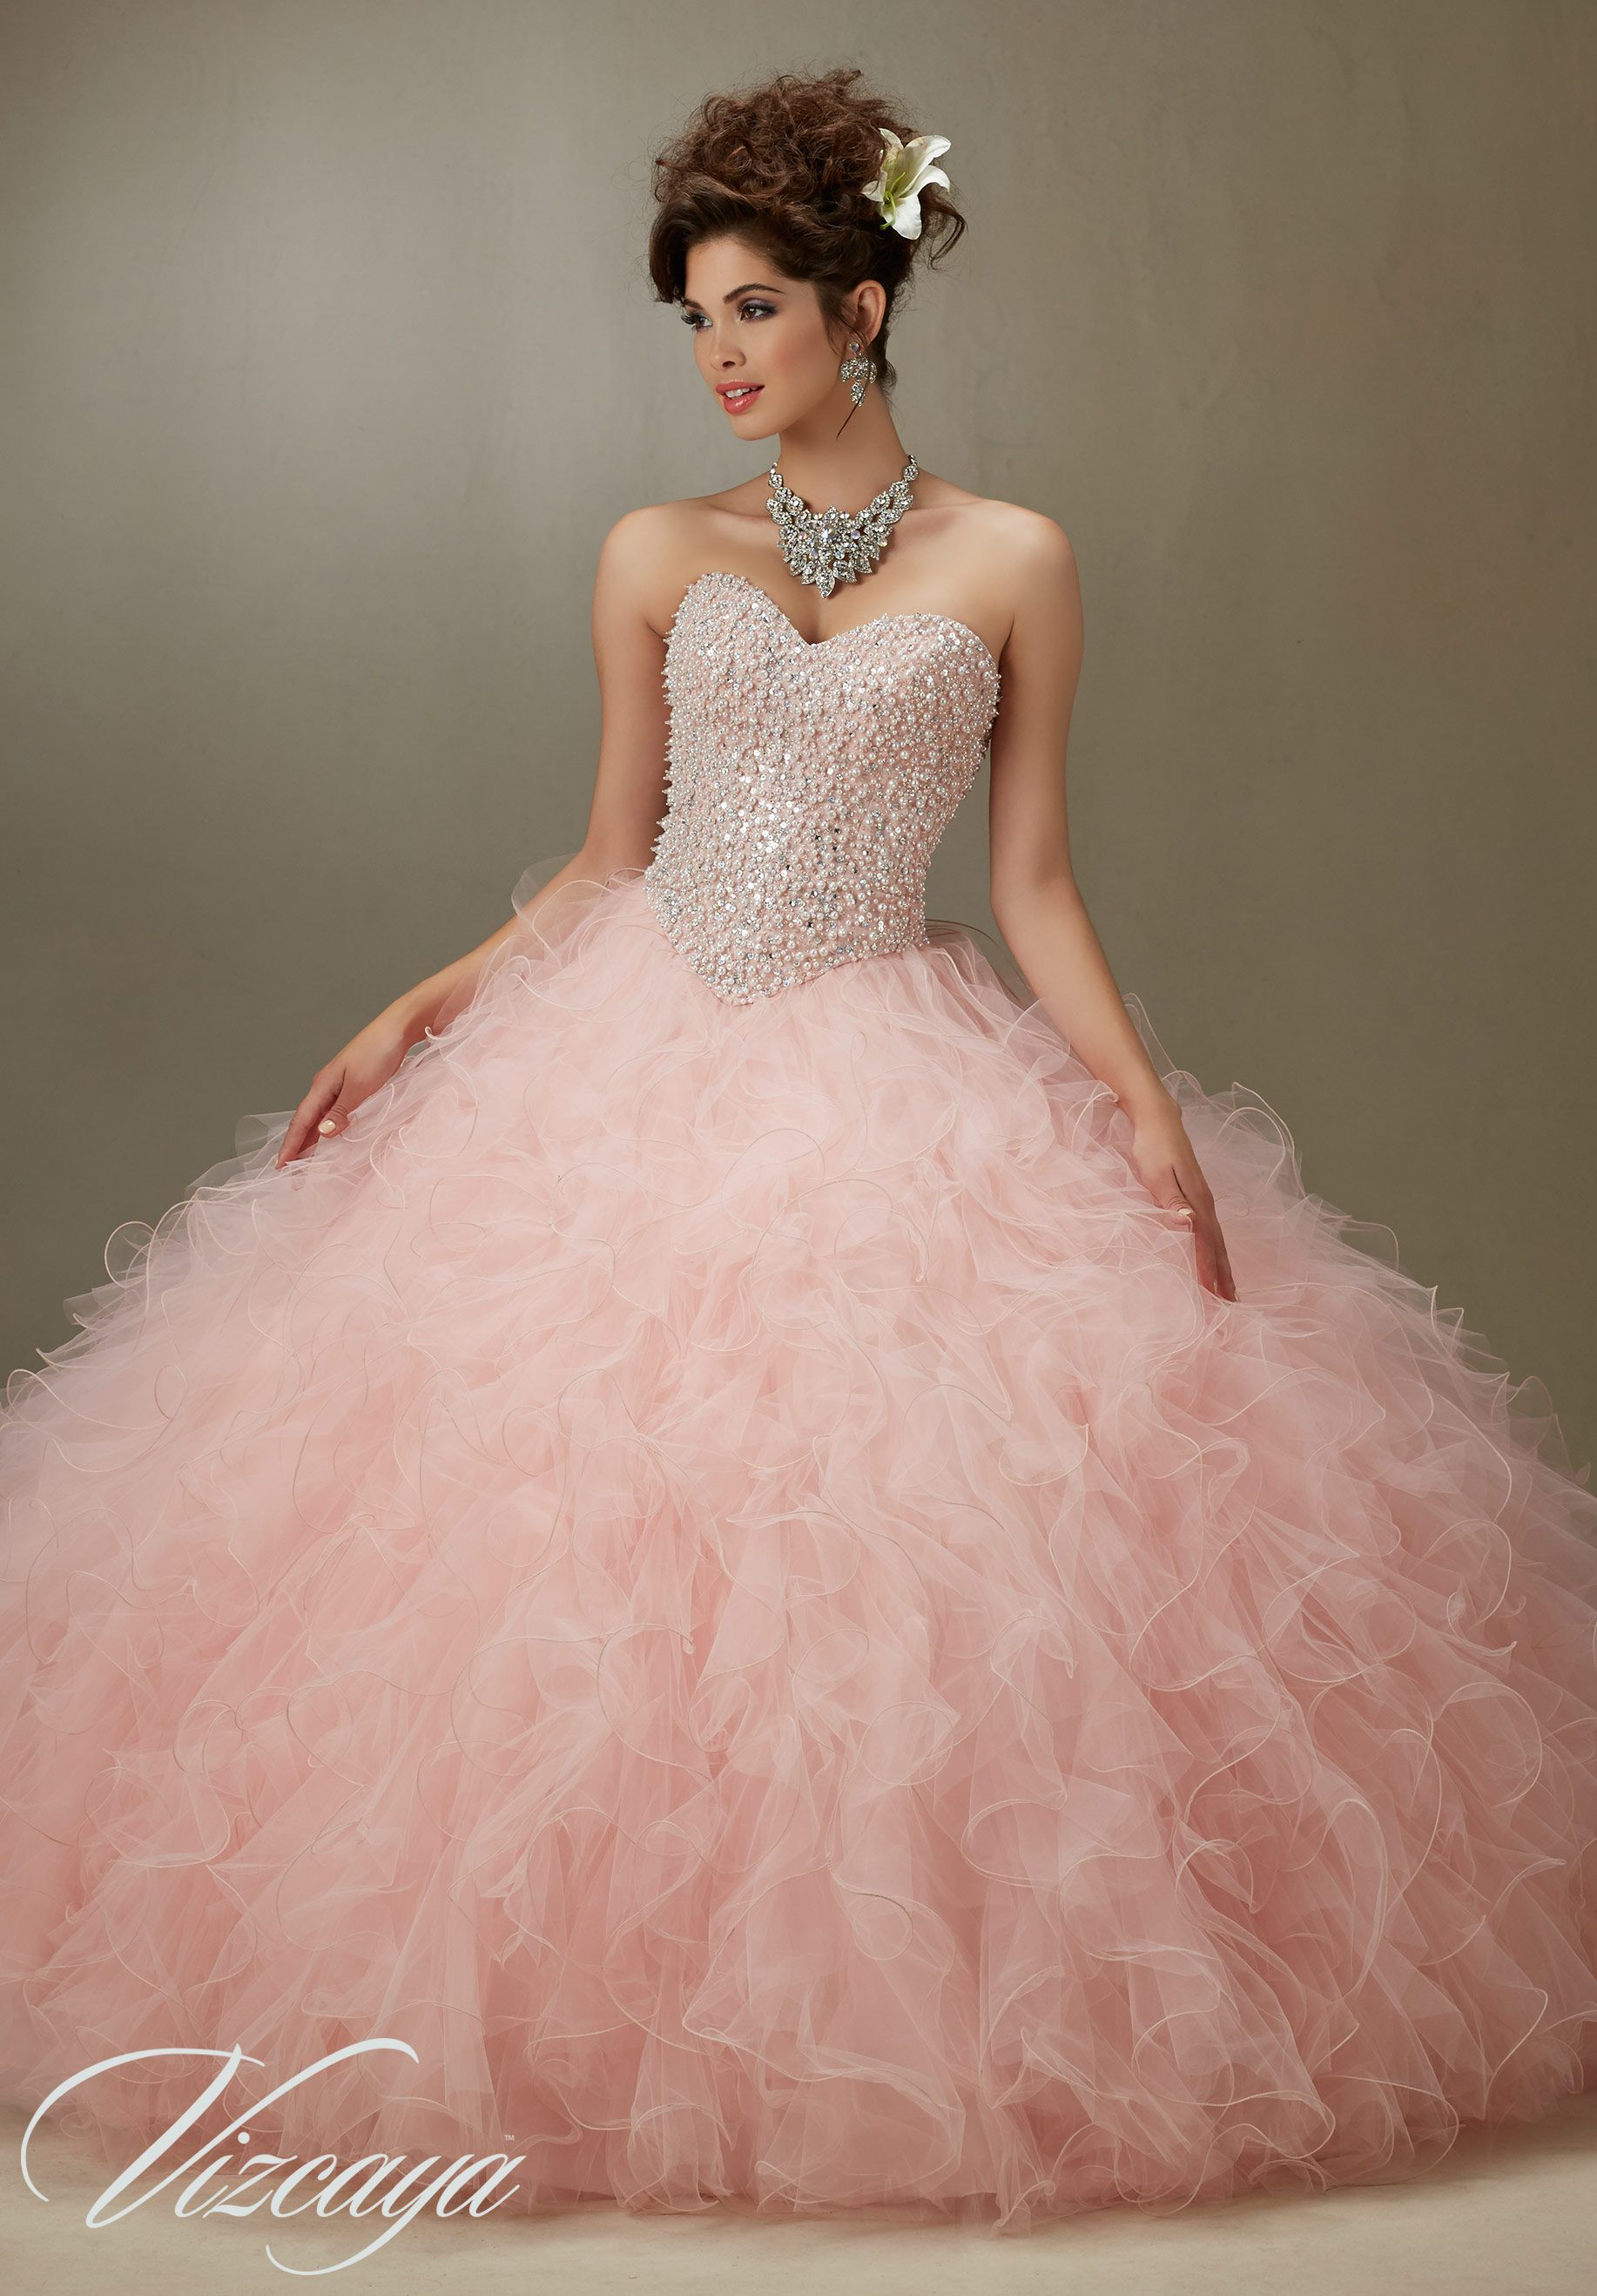 http://www.styleyourwear.com/category/quinceanera-dresses ...